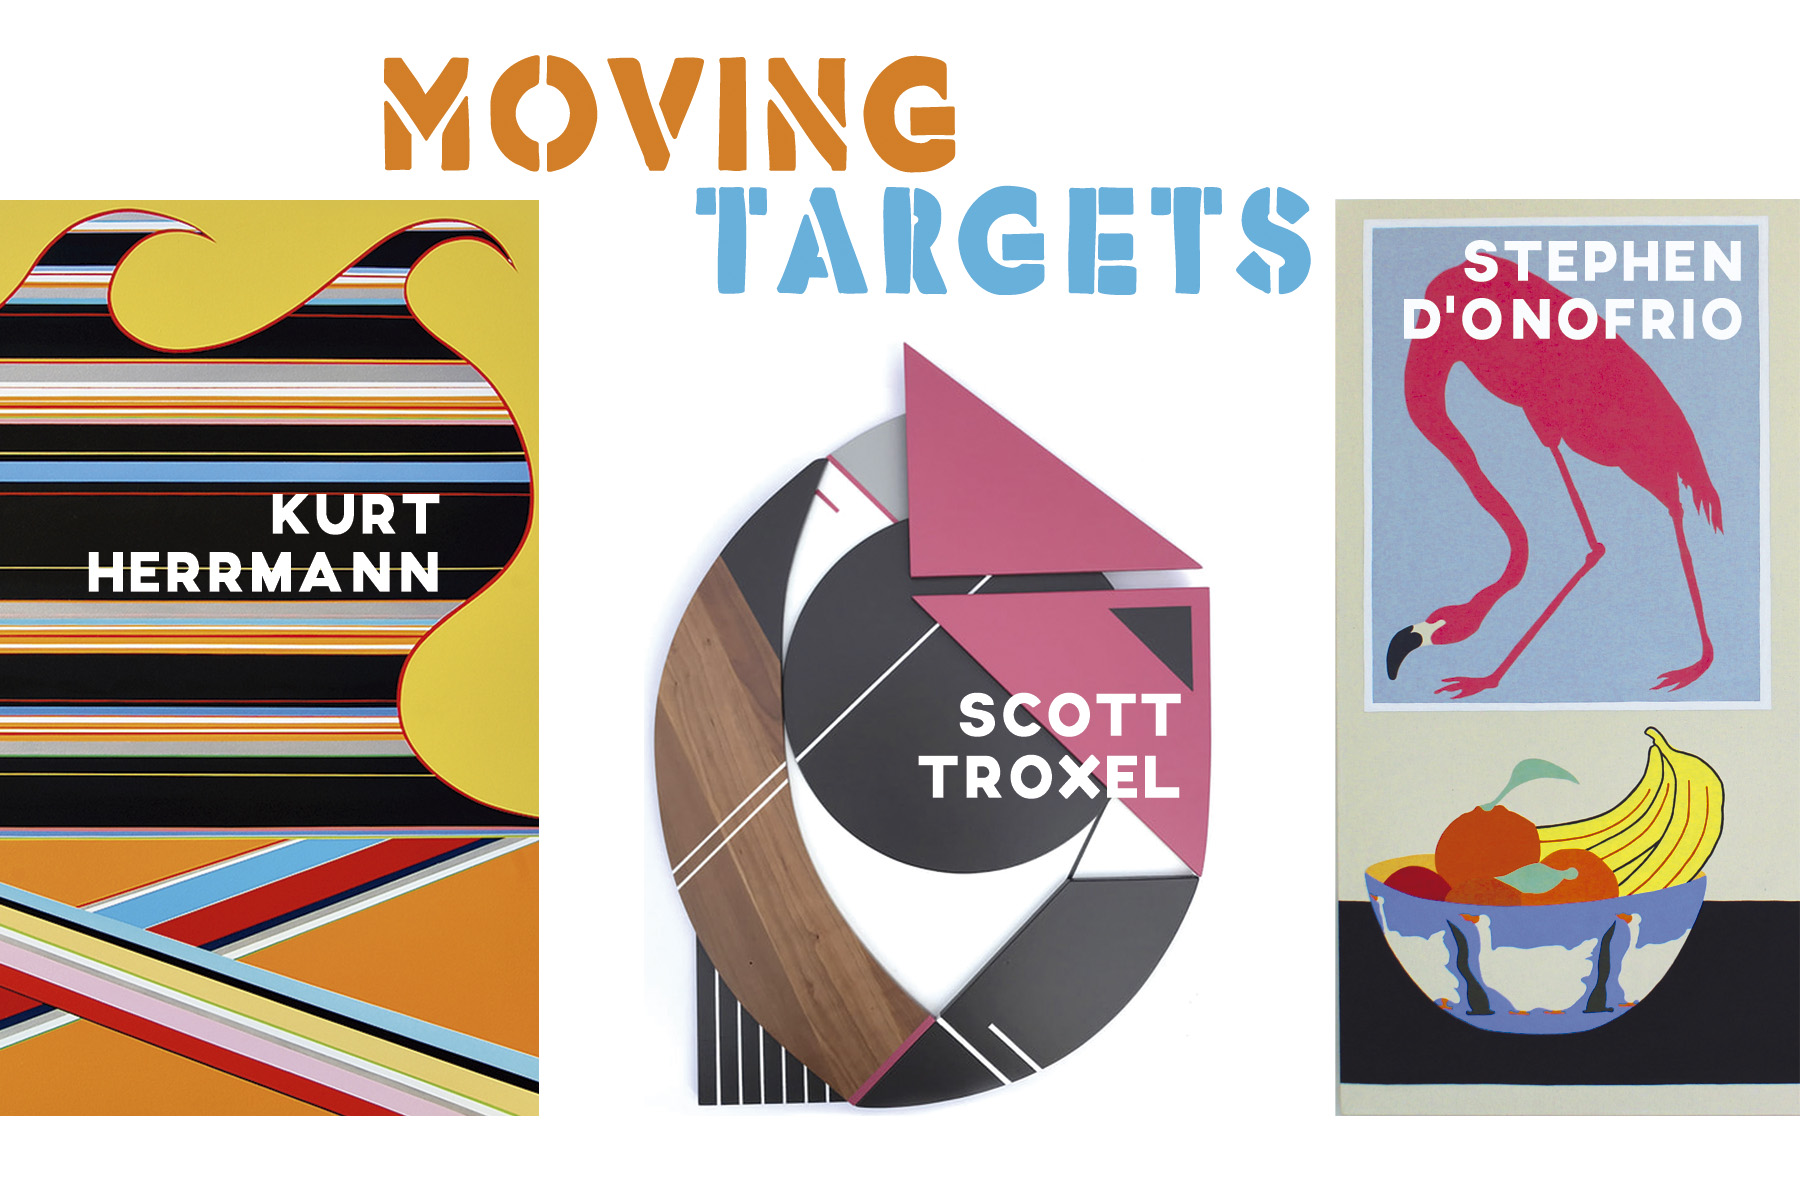 moving targets postcardrgb.jpg